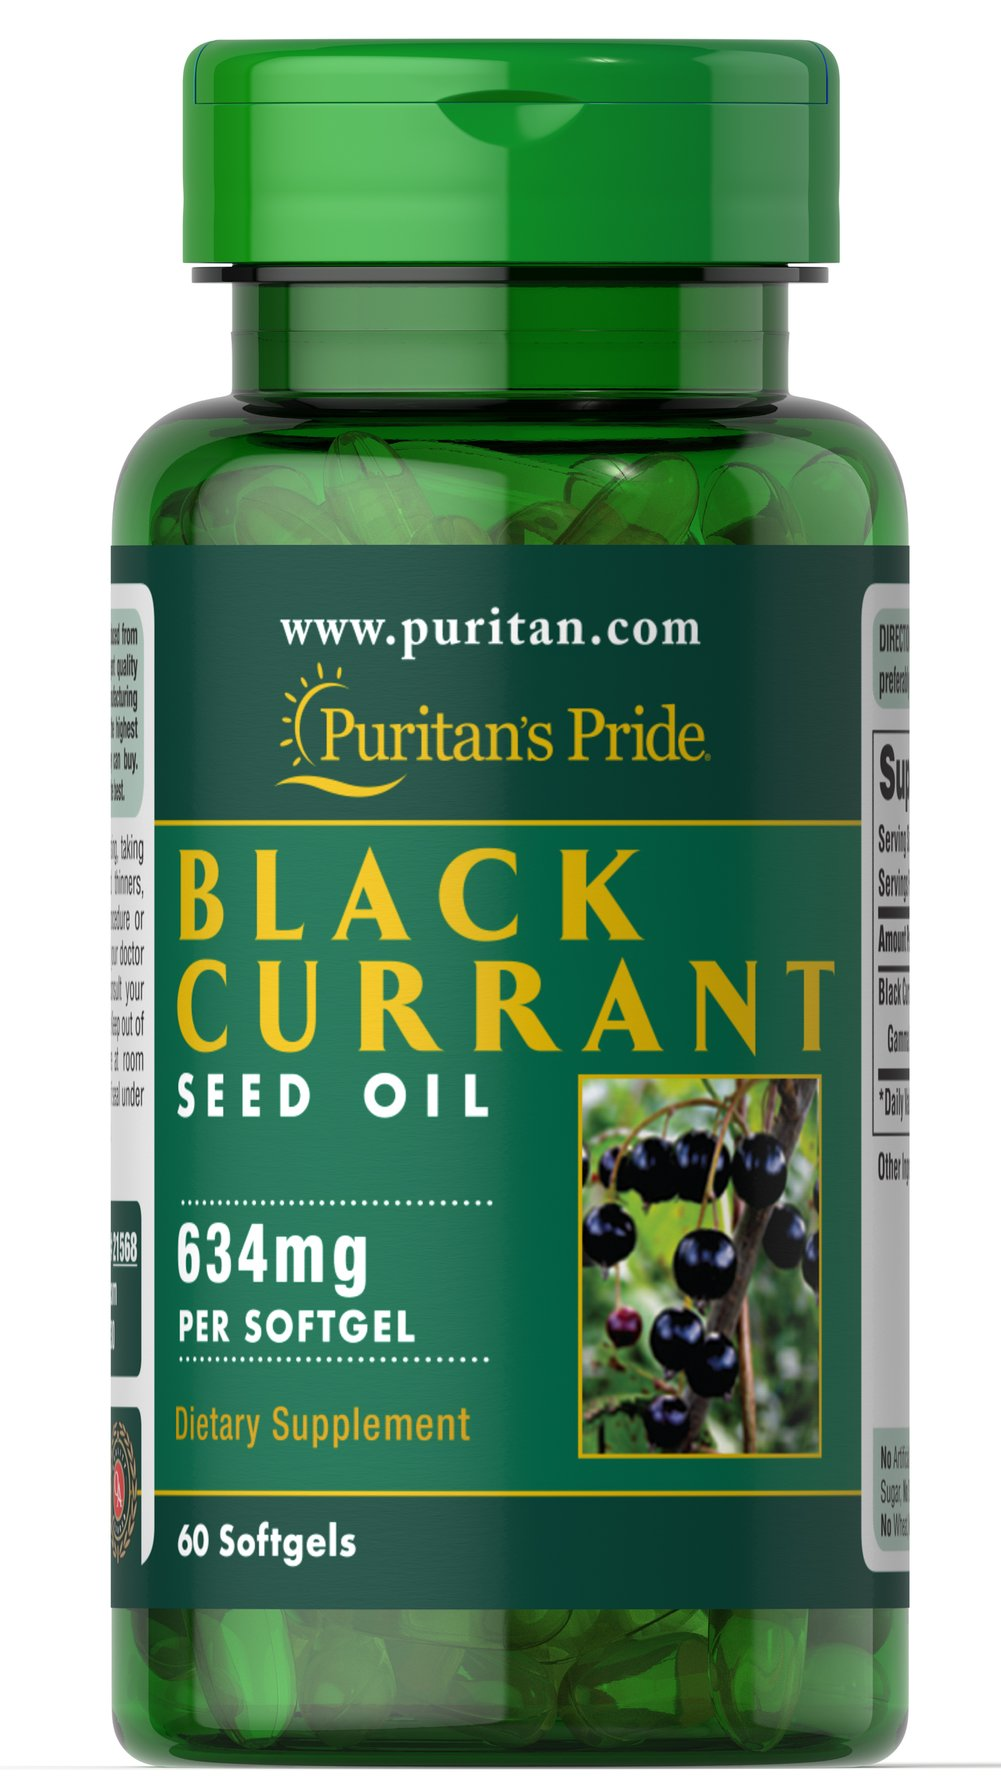 Black Currant Seed Oil 634 mg